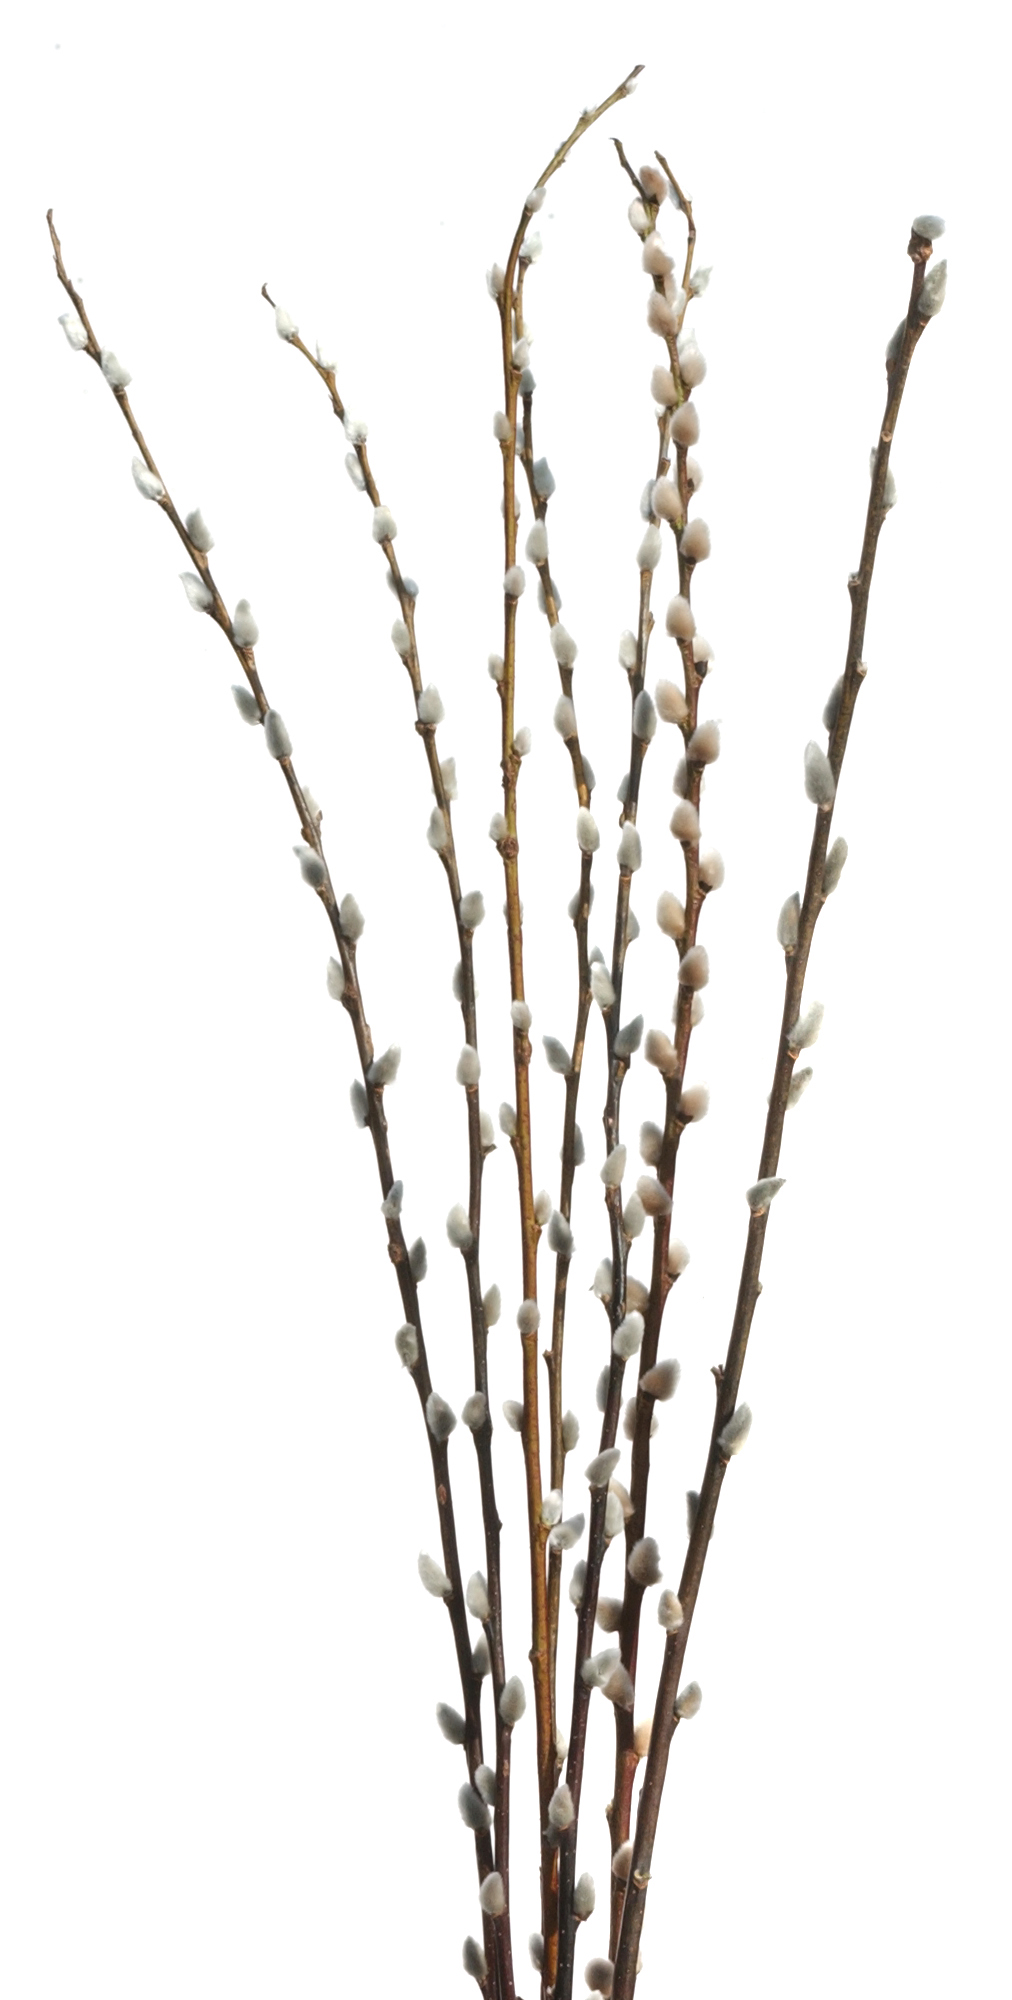 Pussy willows pruning